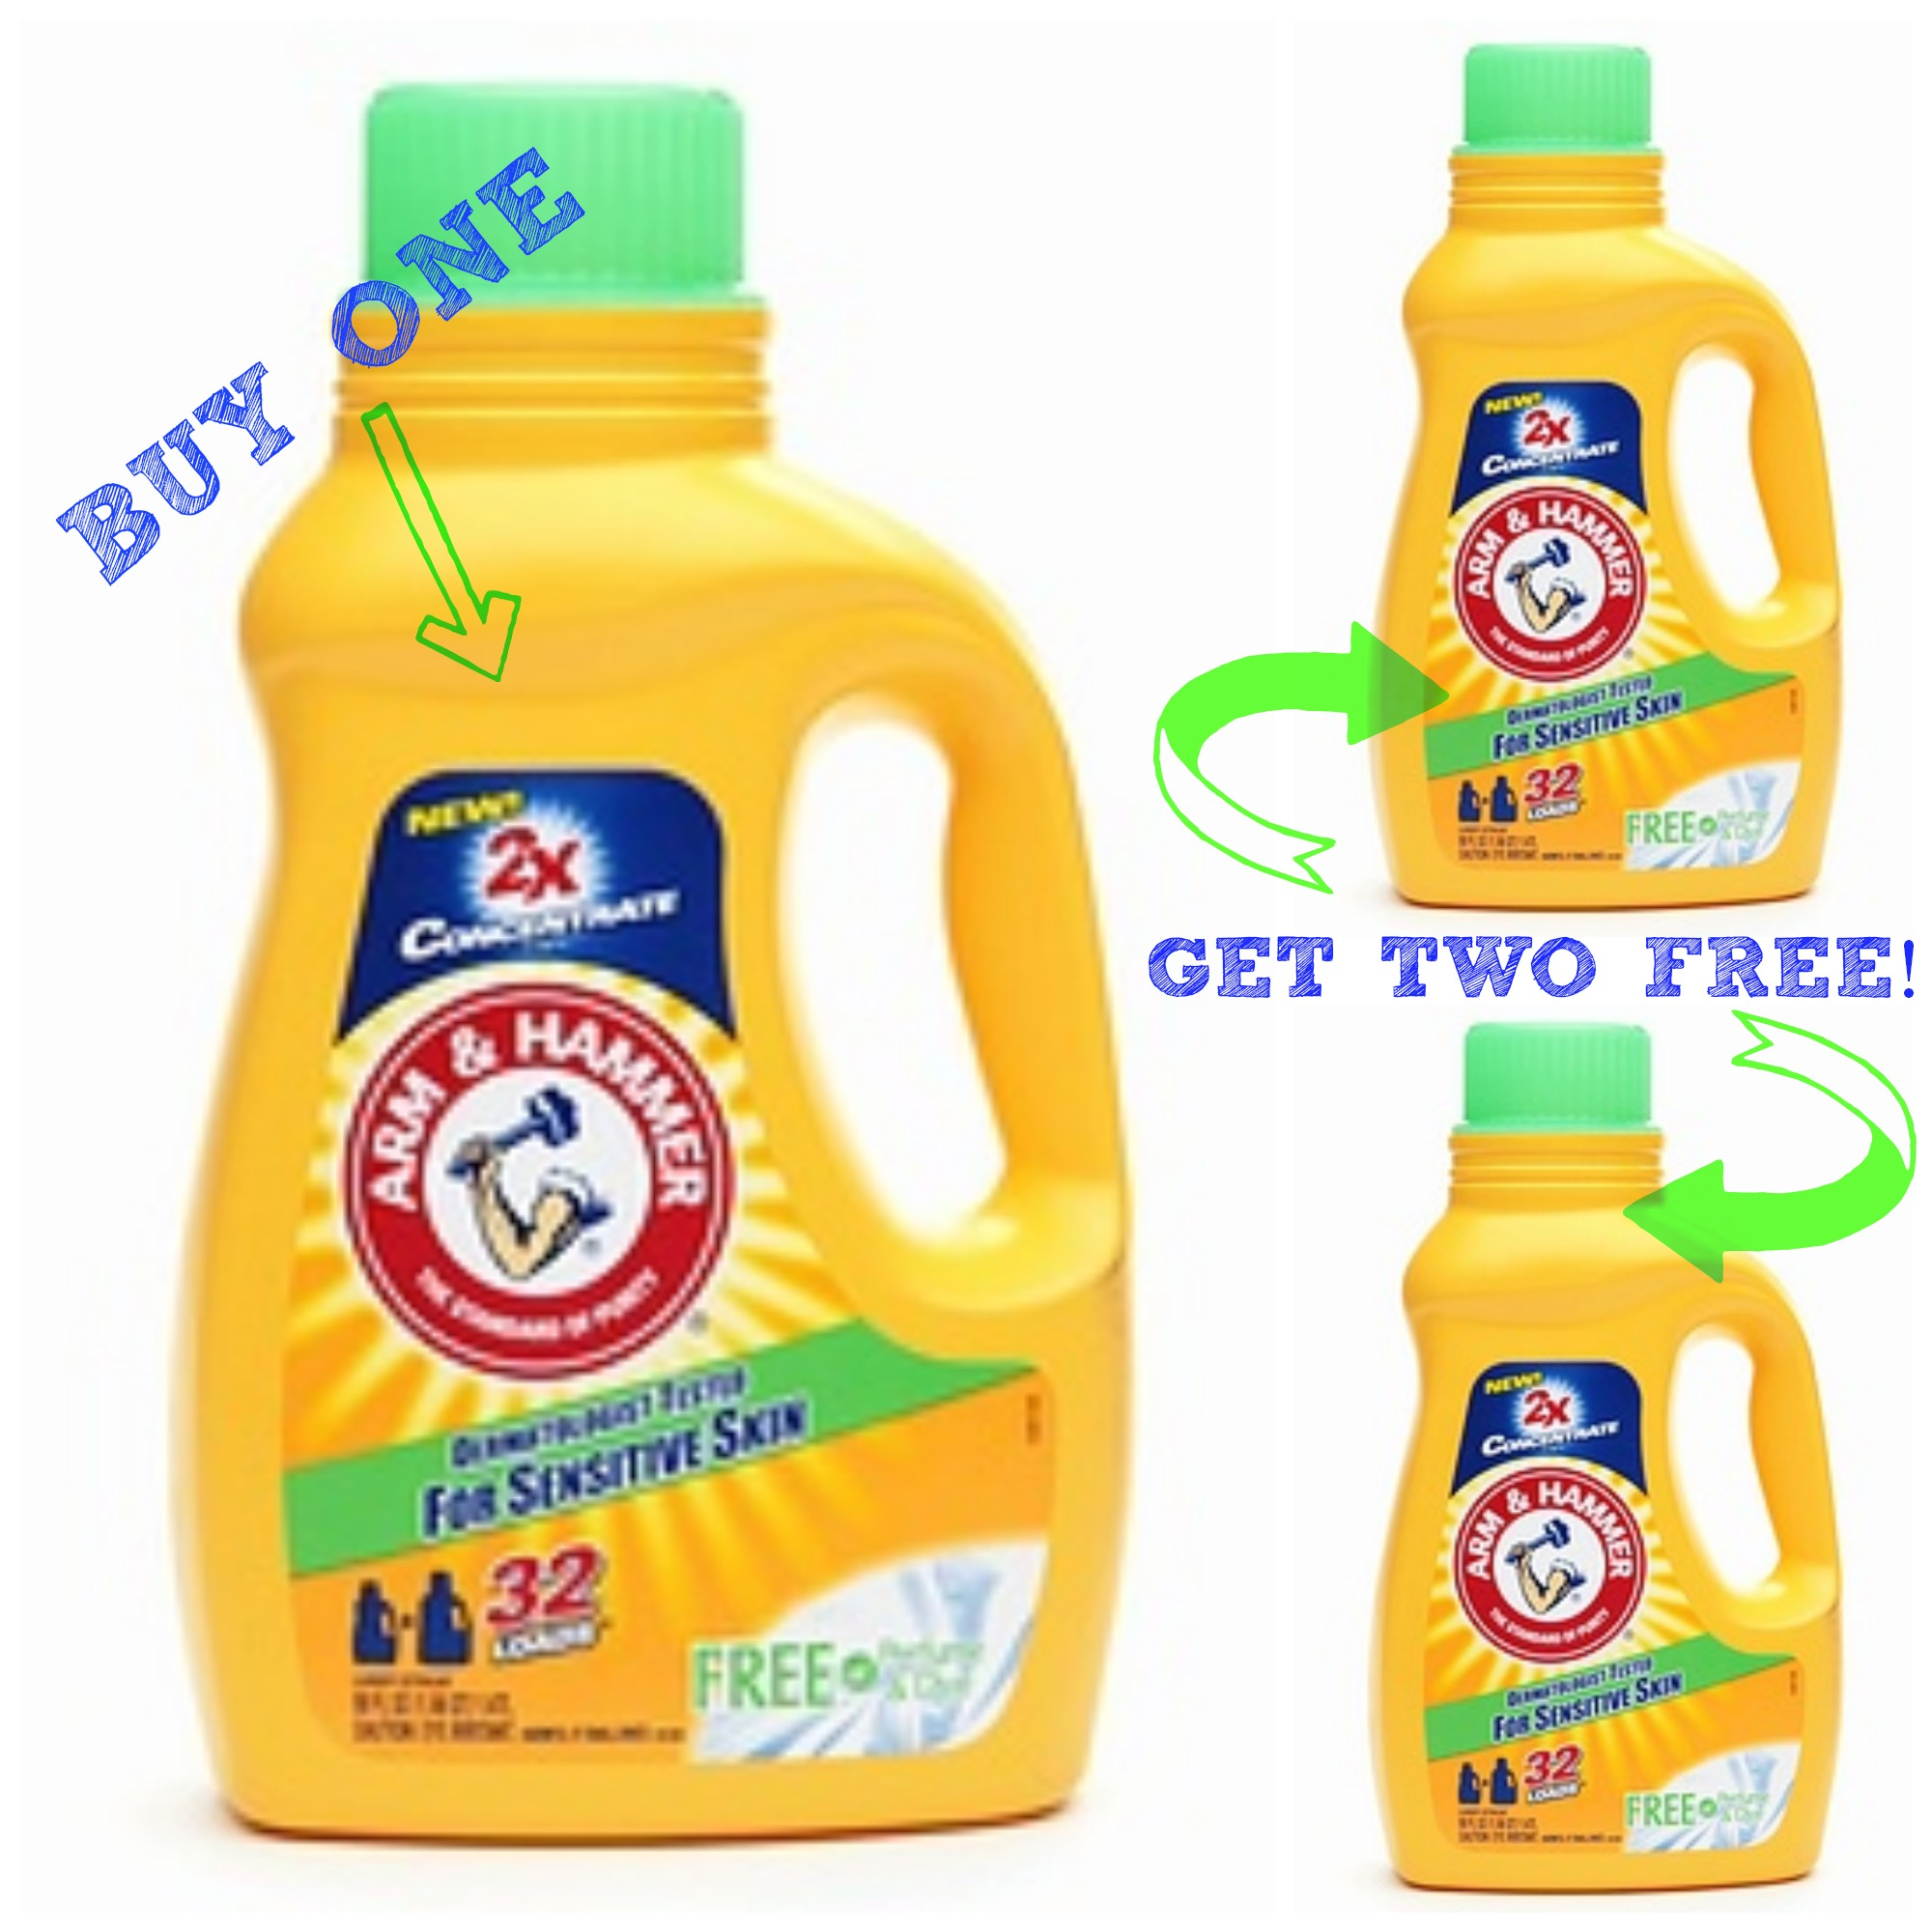 How to get free laundry detergent using coupons